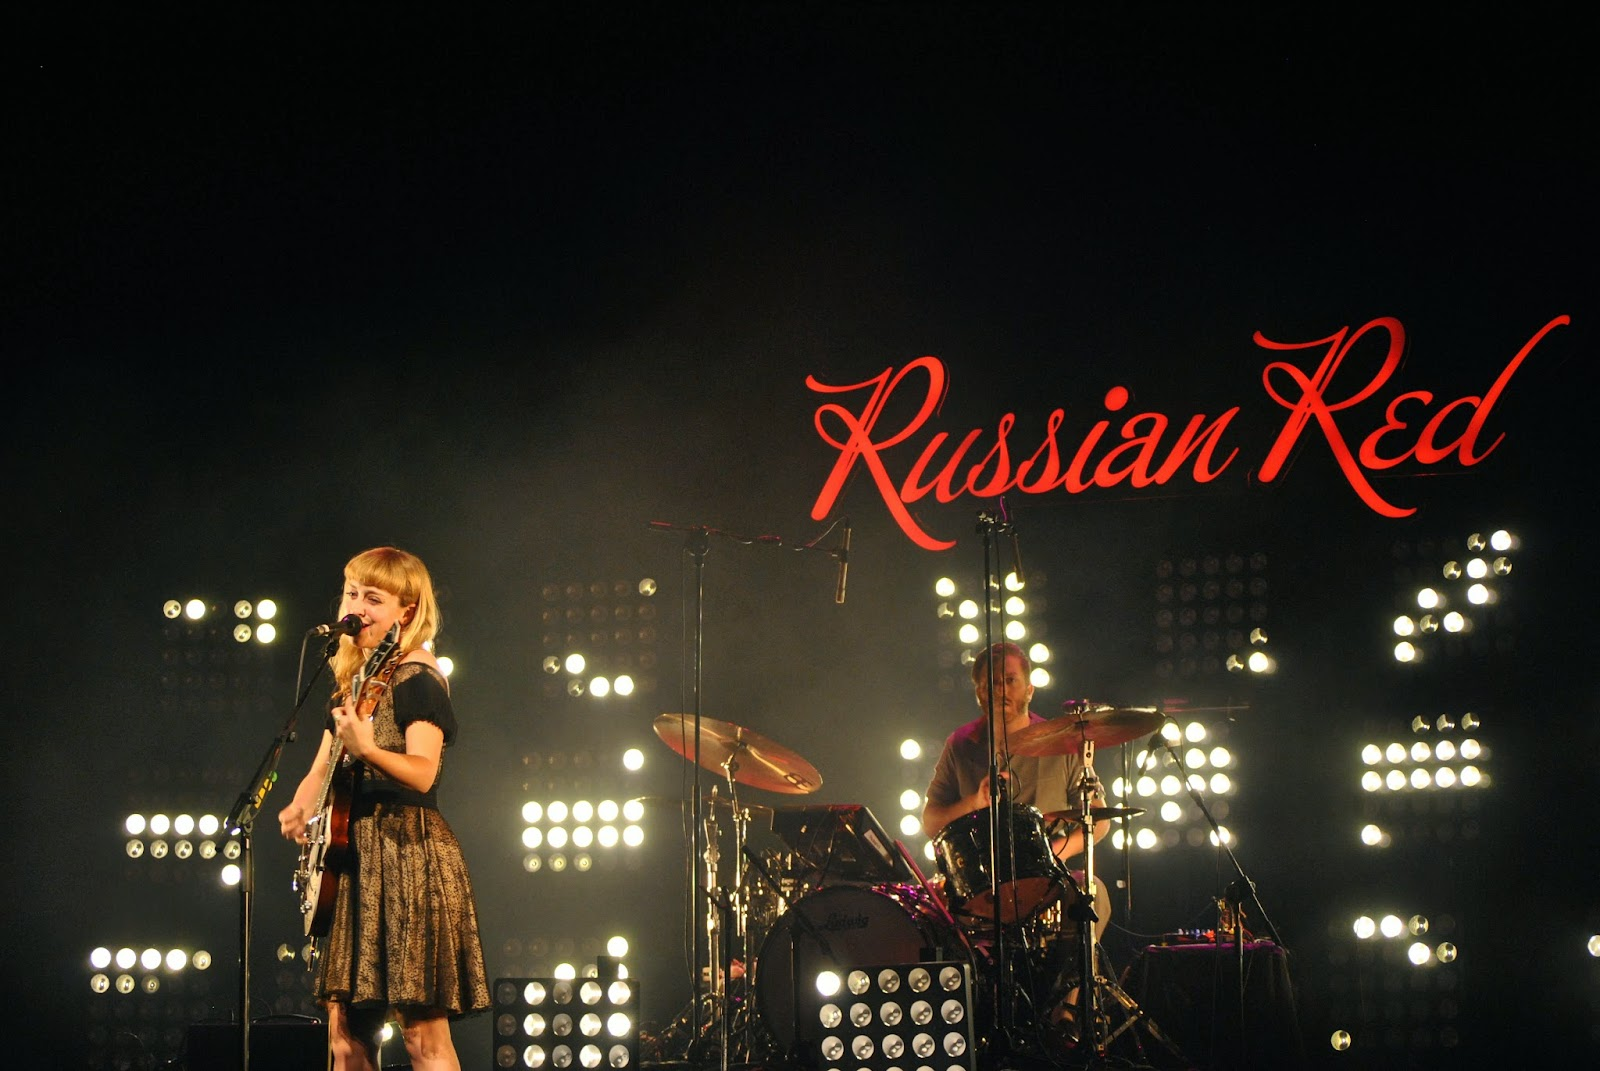 Russian Red